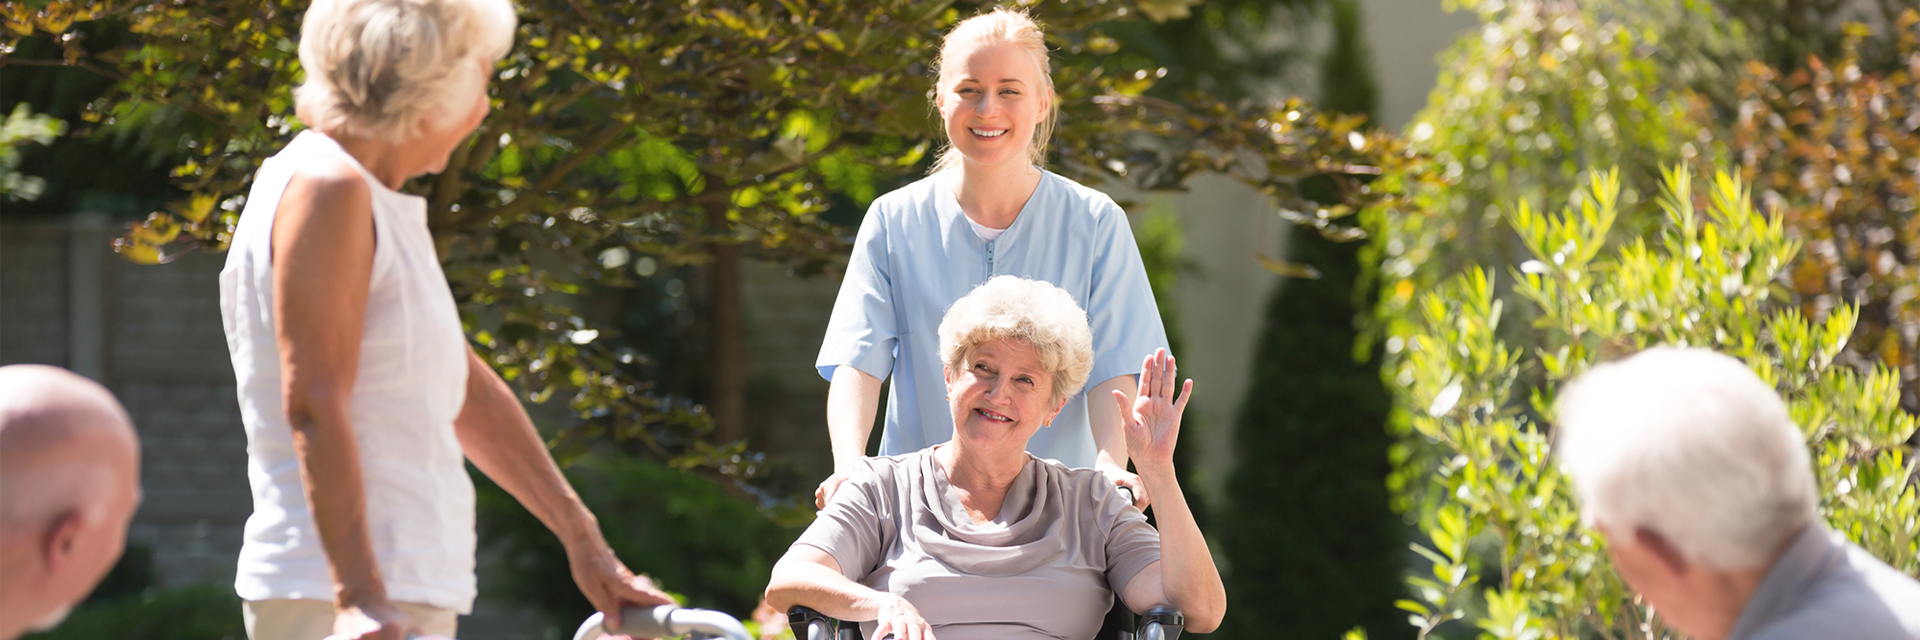 patient waving while nurse pushes her in a wheelchair